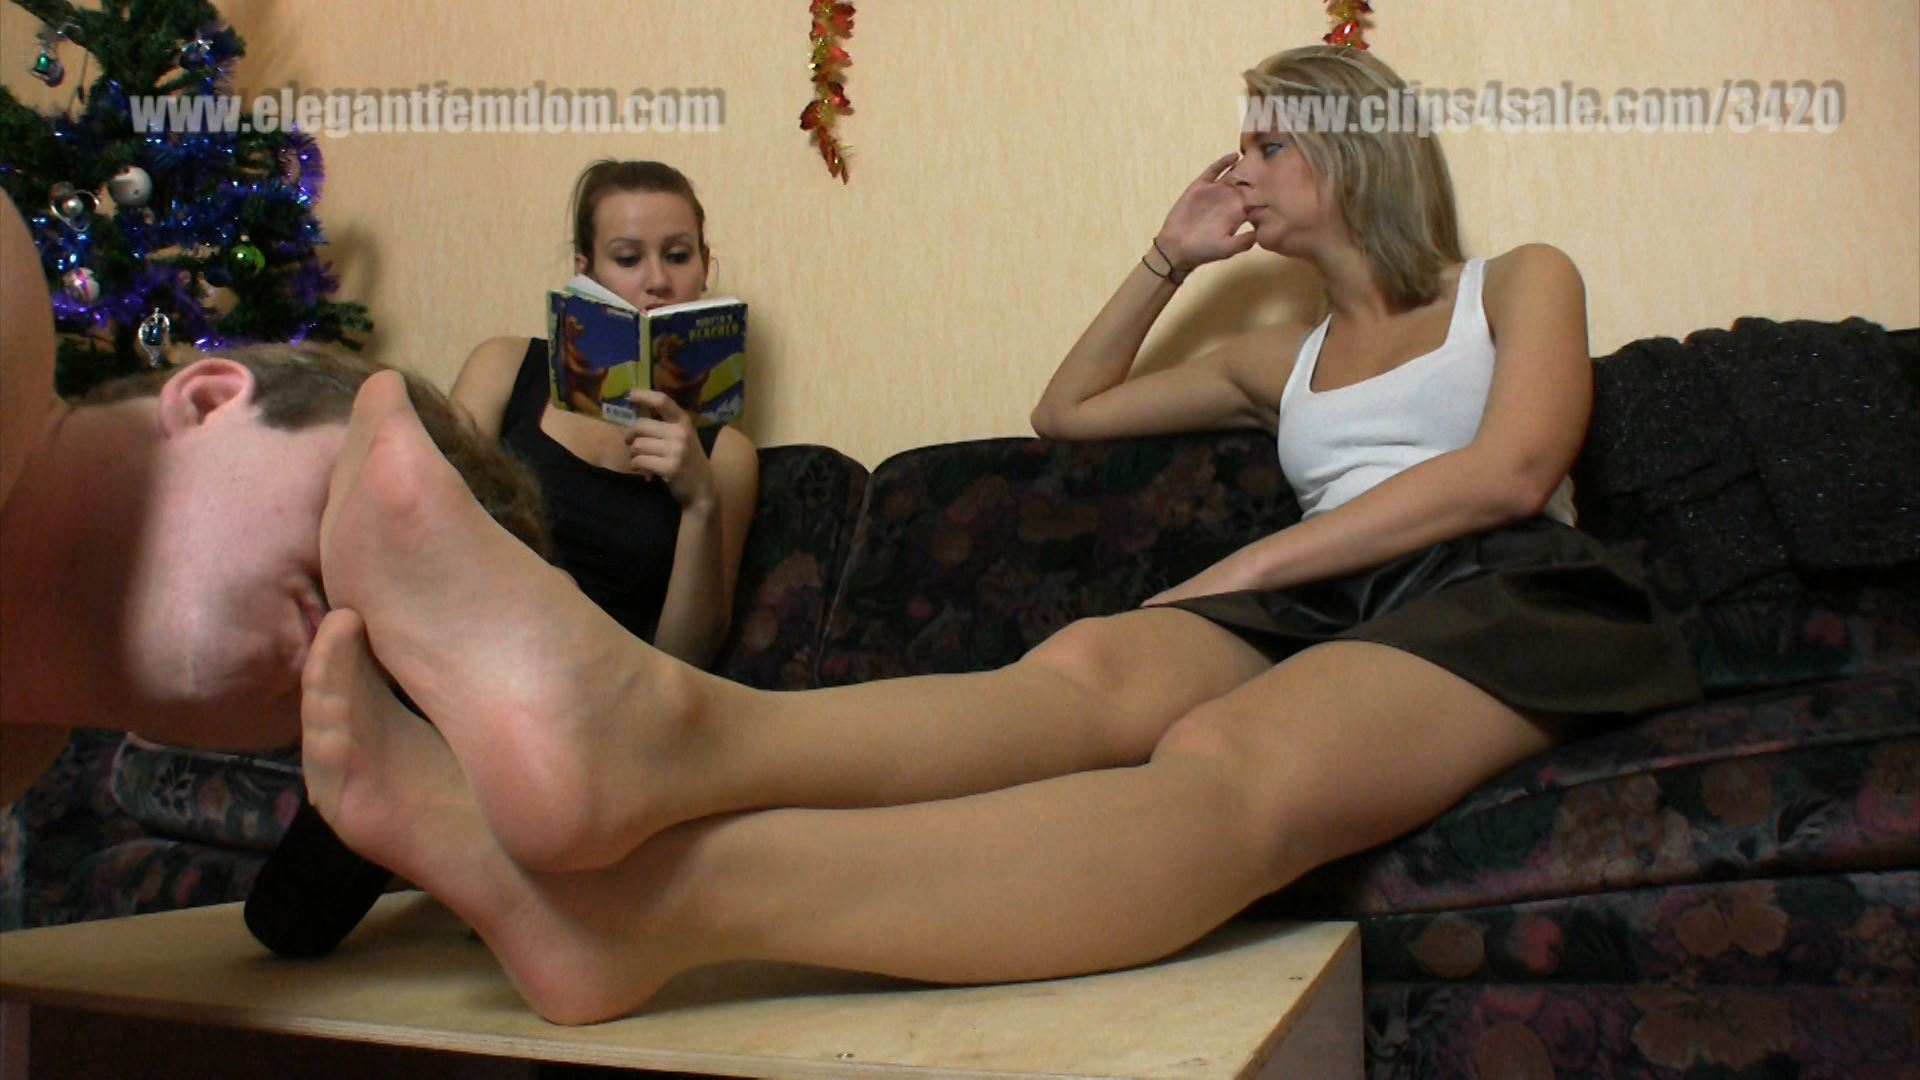 The lowly inferior male smells and pampers - ELEGANTFEMDOM - FULL HD/1080p/MP4